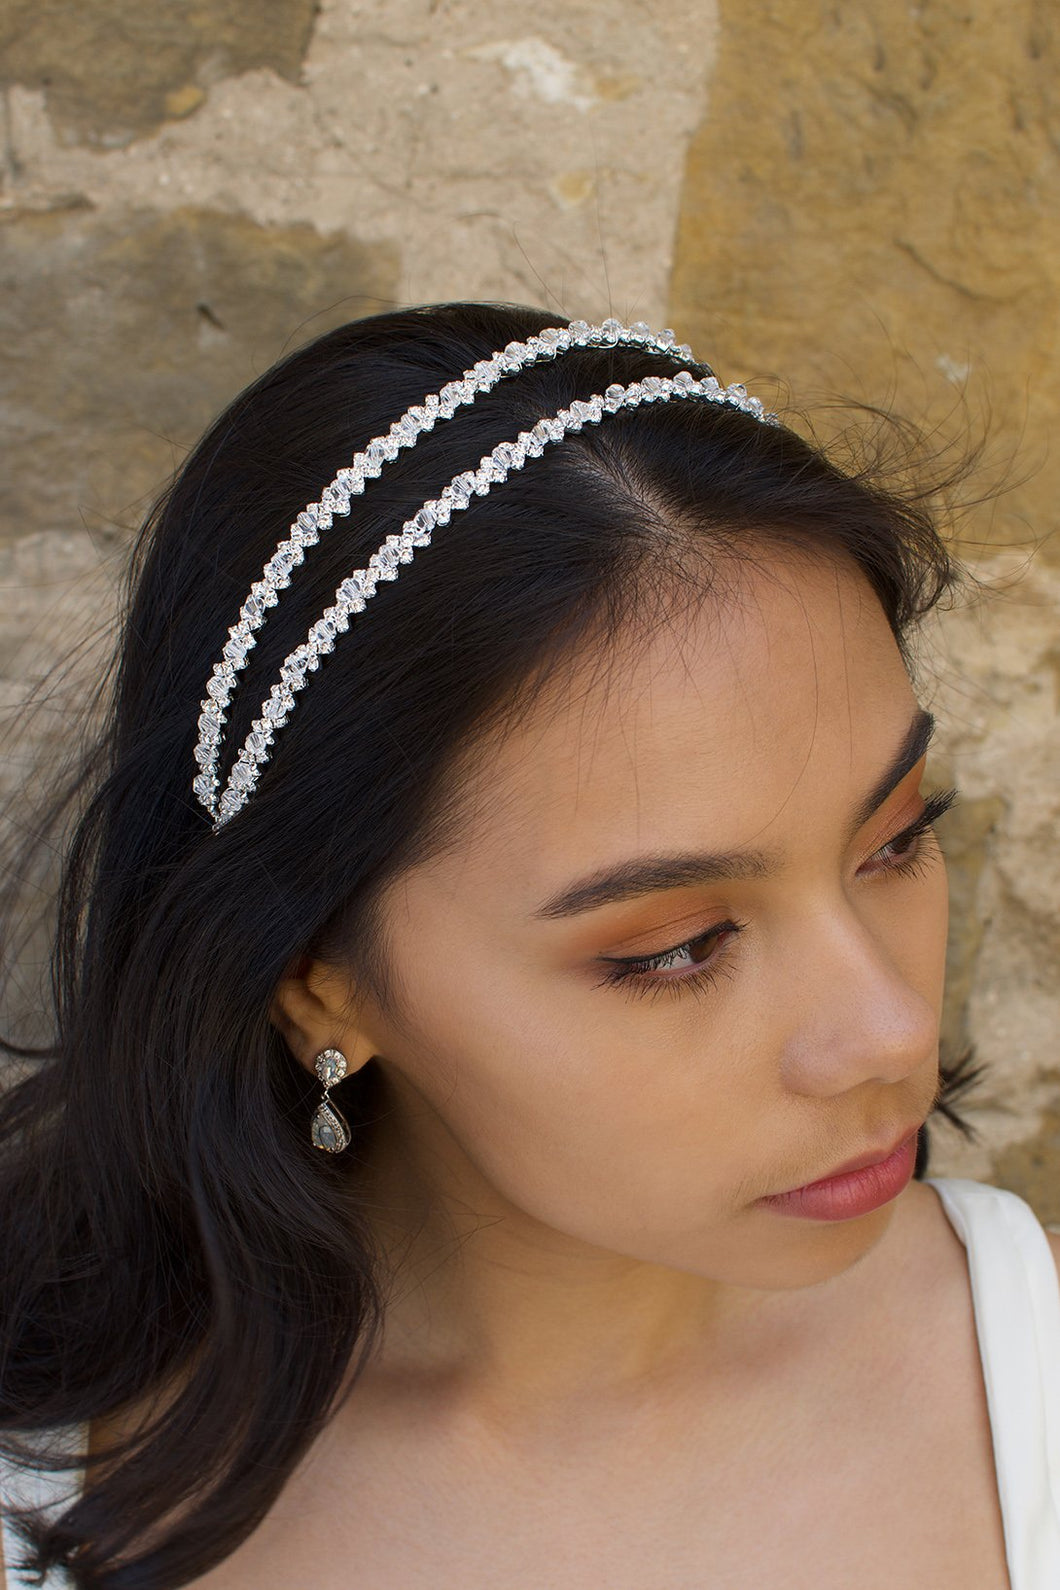 Black hair bride wearing a simple two row silver headband with a stone wall background.